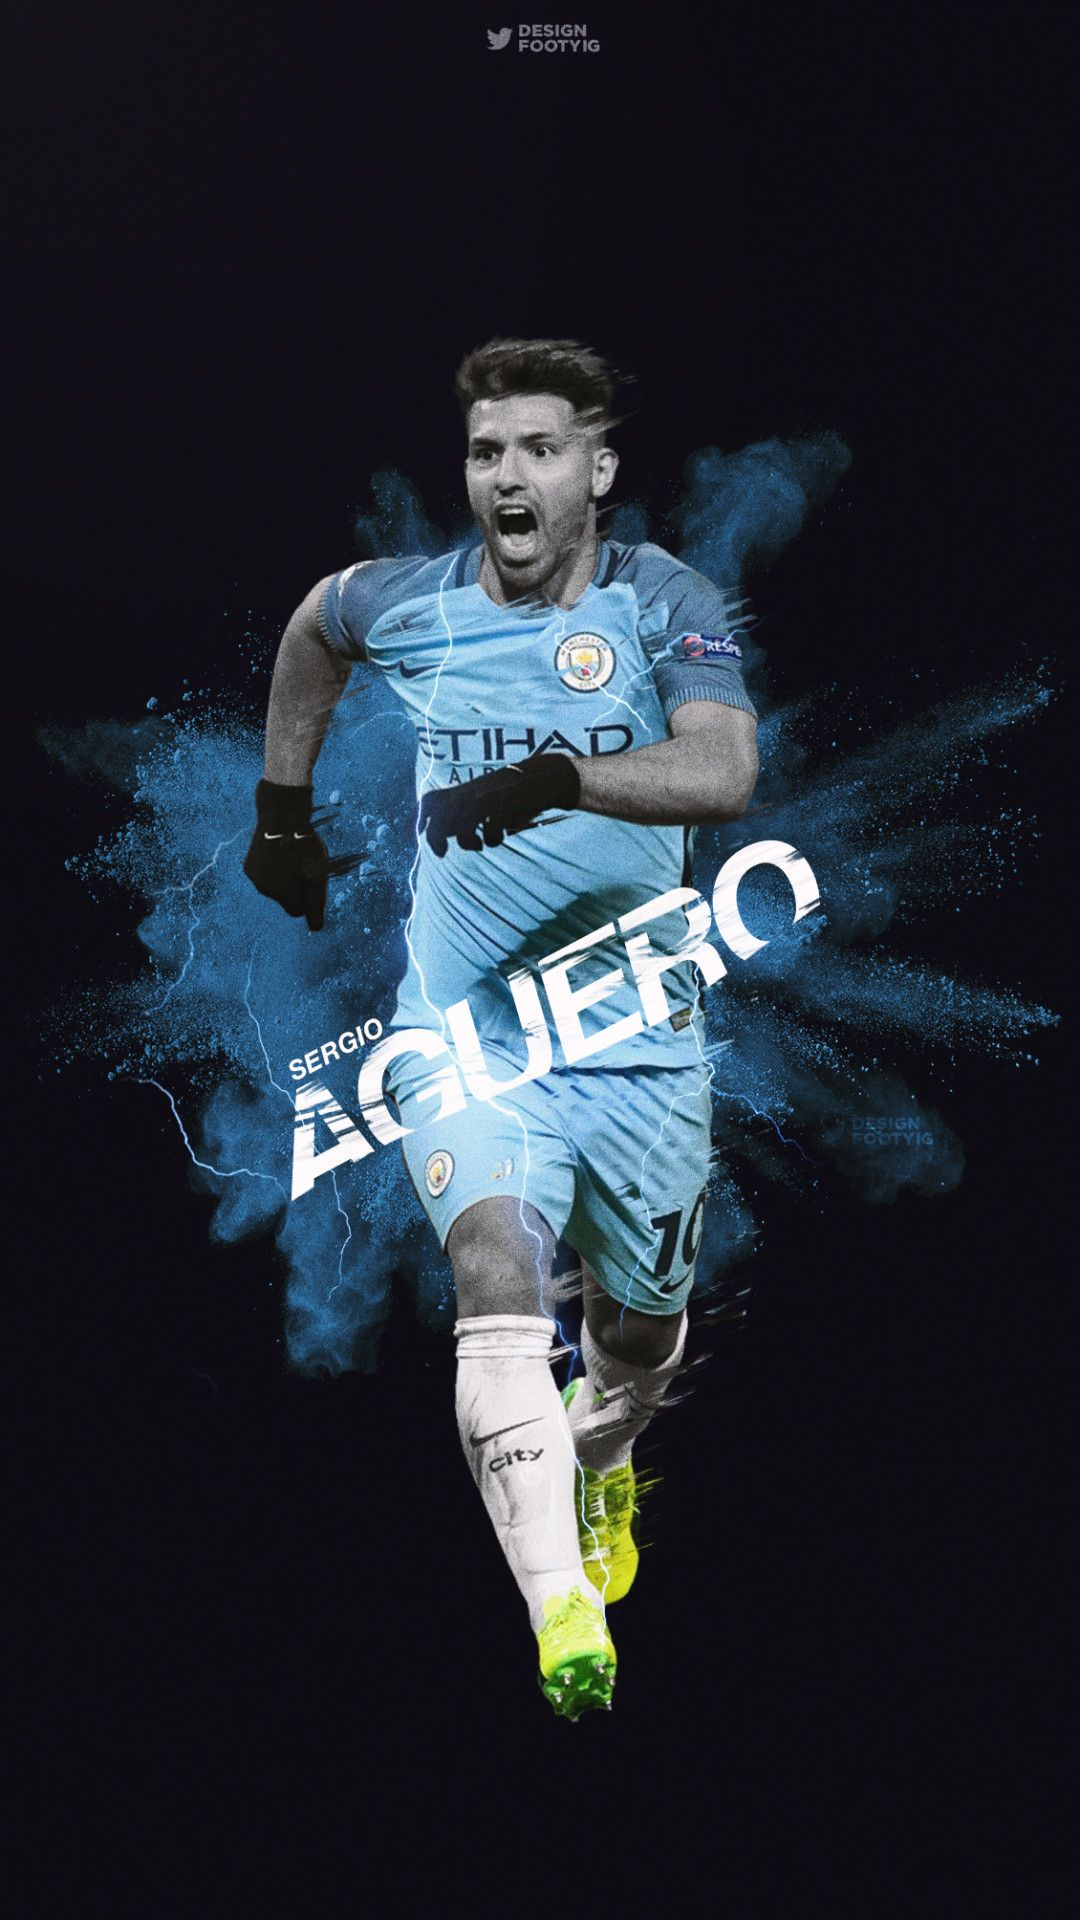 World Cup Soccer Wallpaper Android Download In 2020 Manchester City Wallpaper Manchester City Manchester United Wallpaper